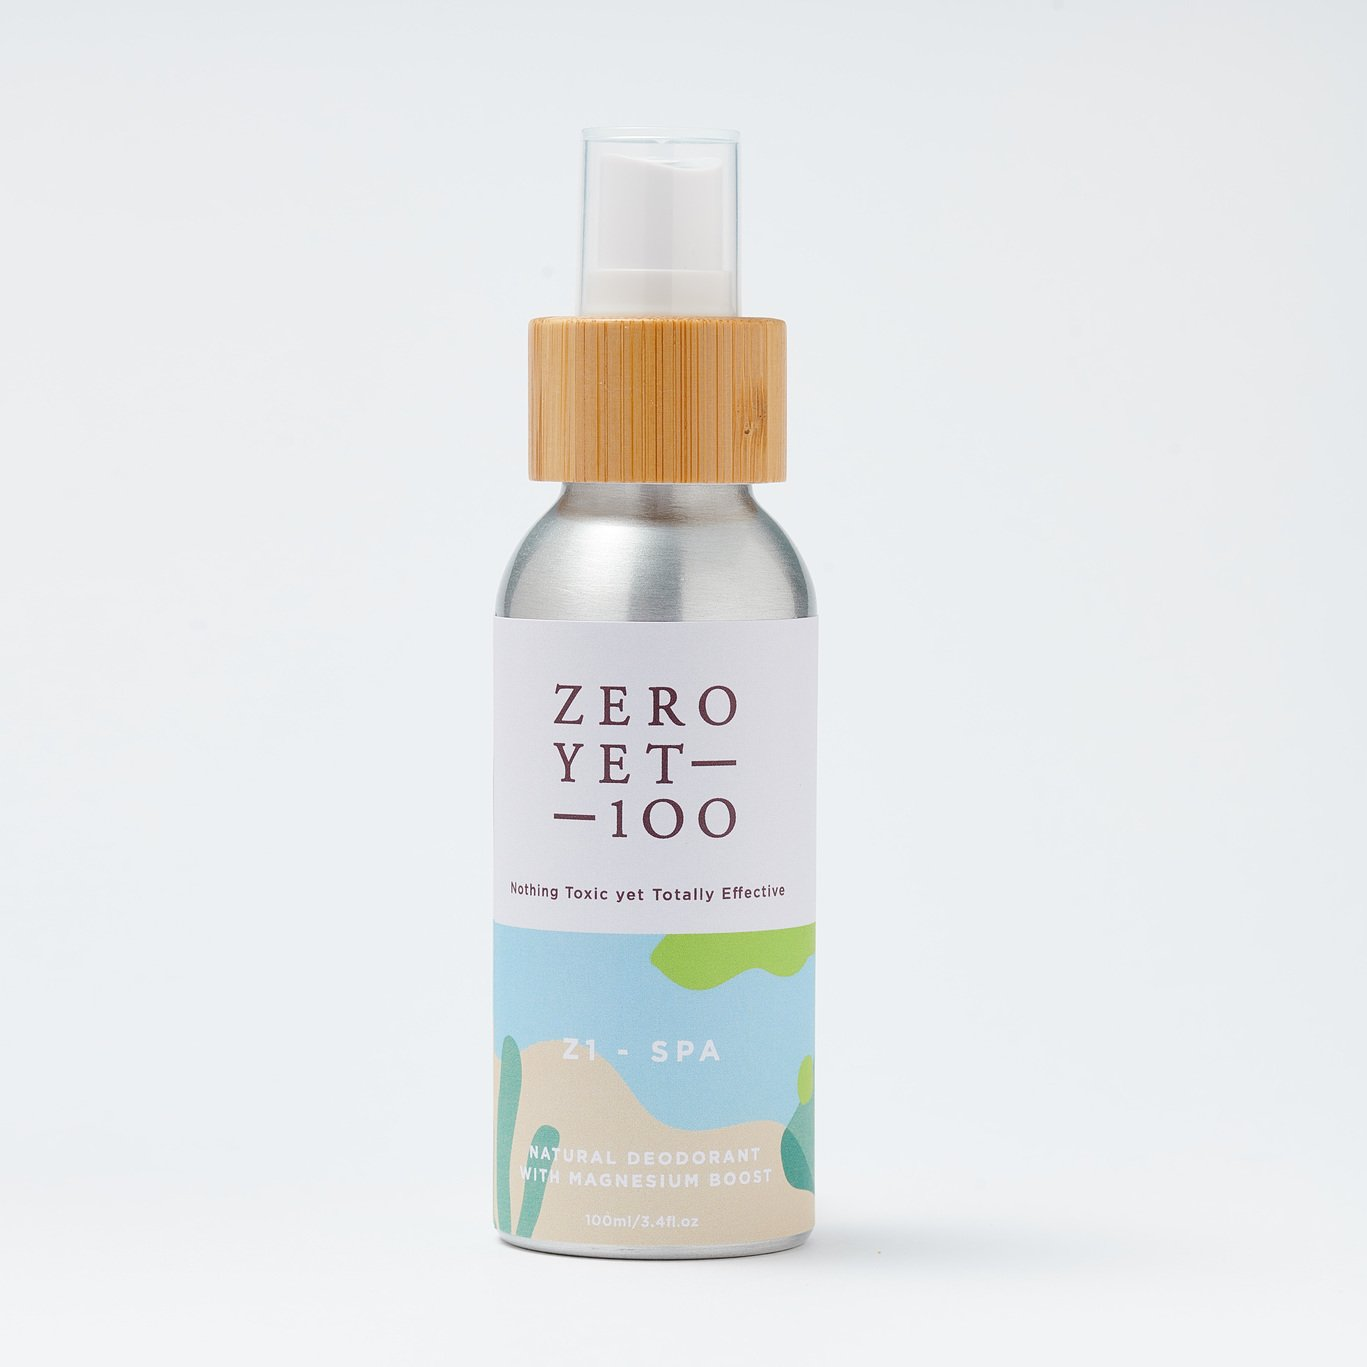 Z1 Spa Deodorant Spray | Vegan & Cruelty Free | ZeroYet100